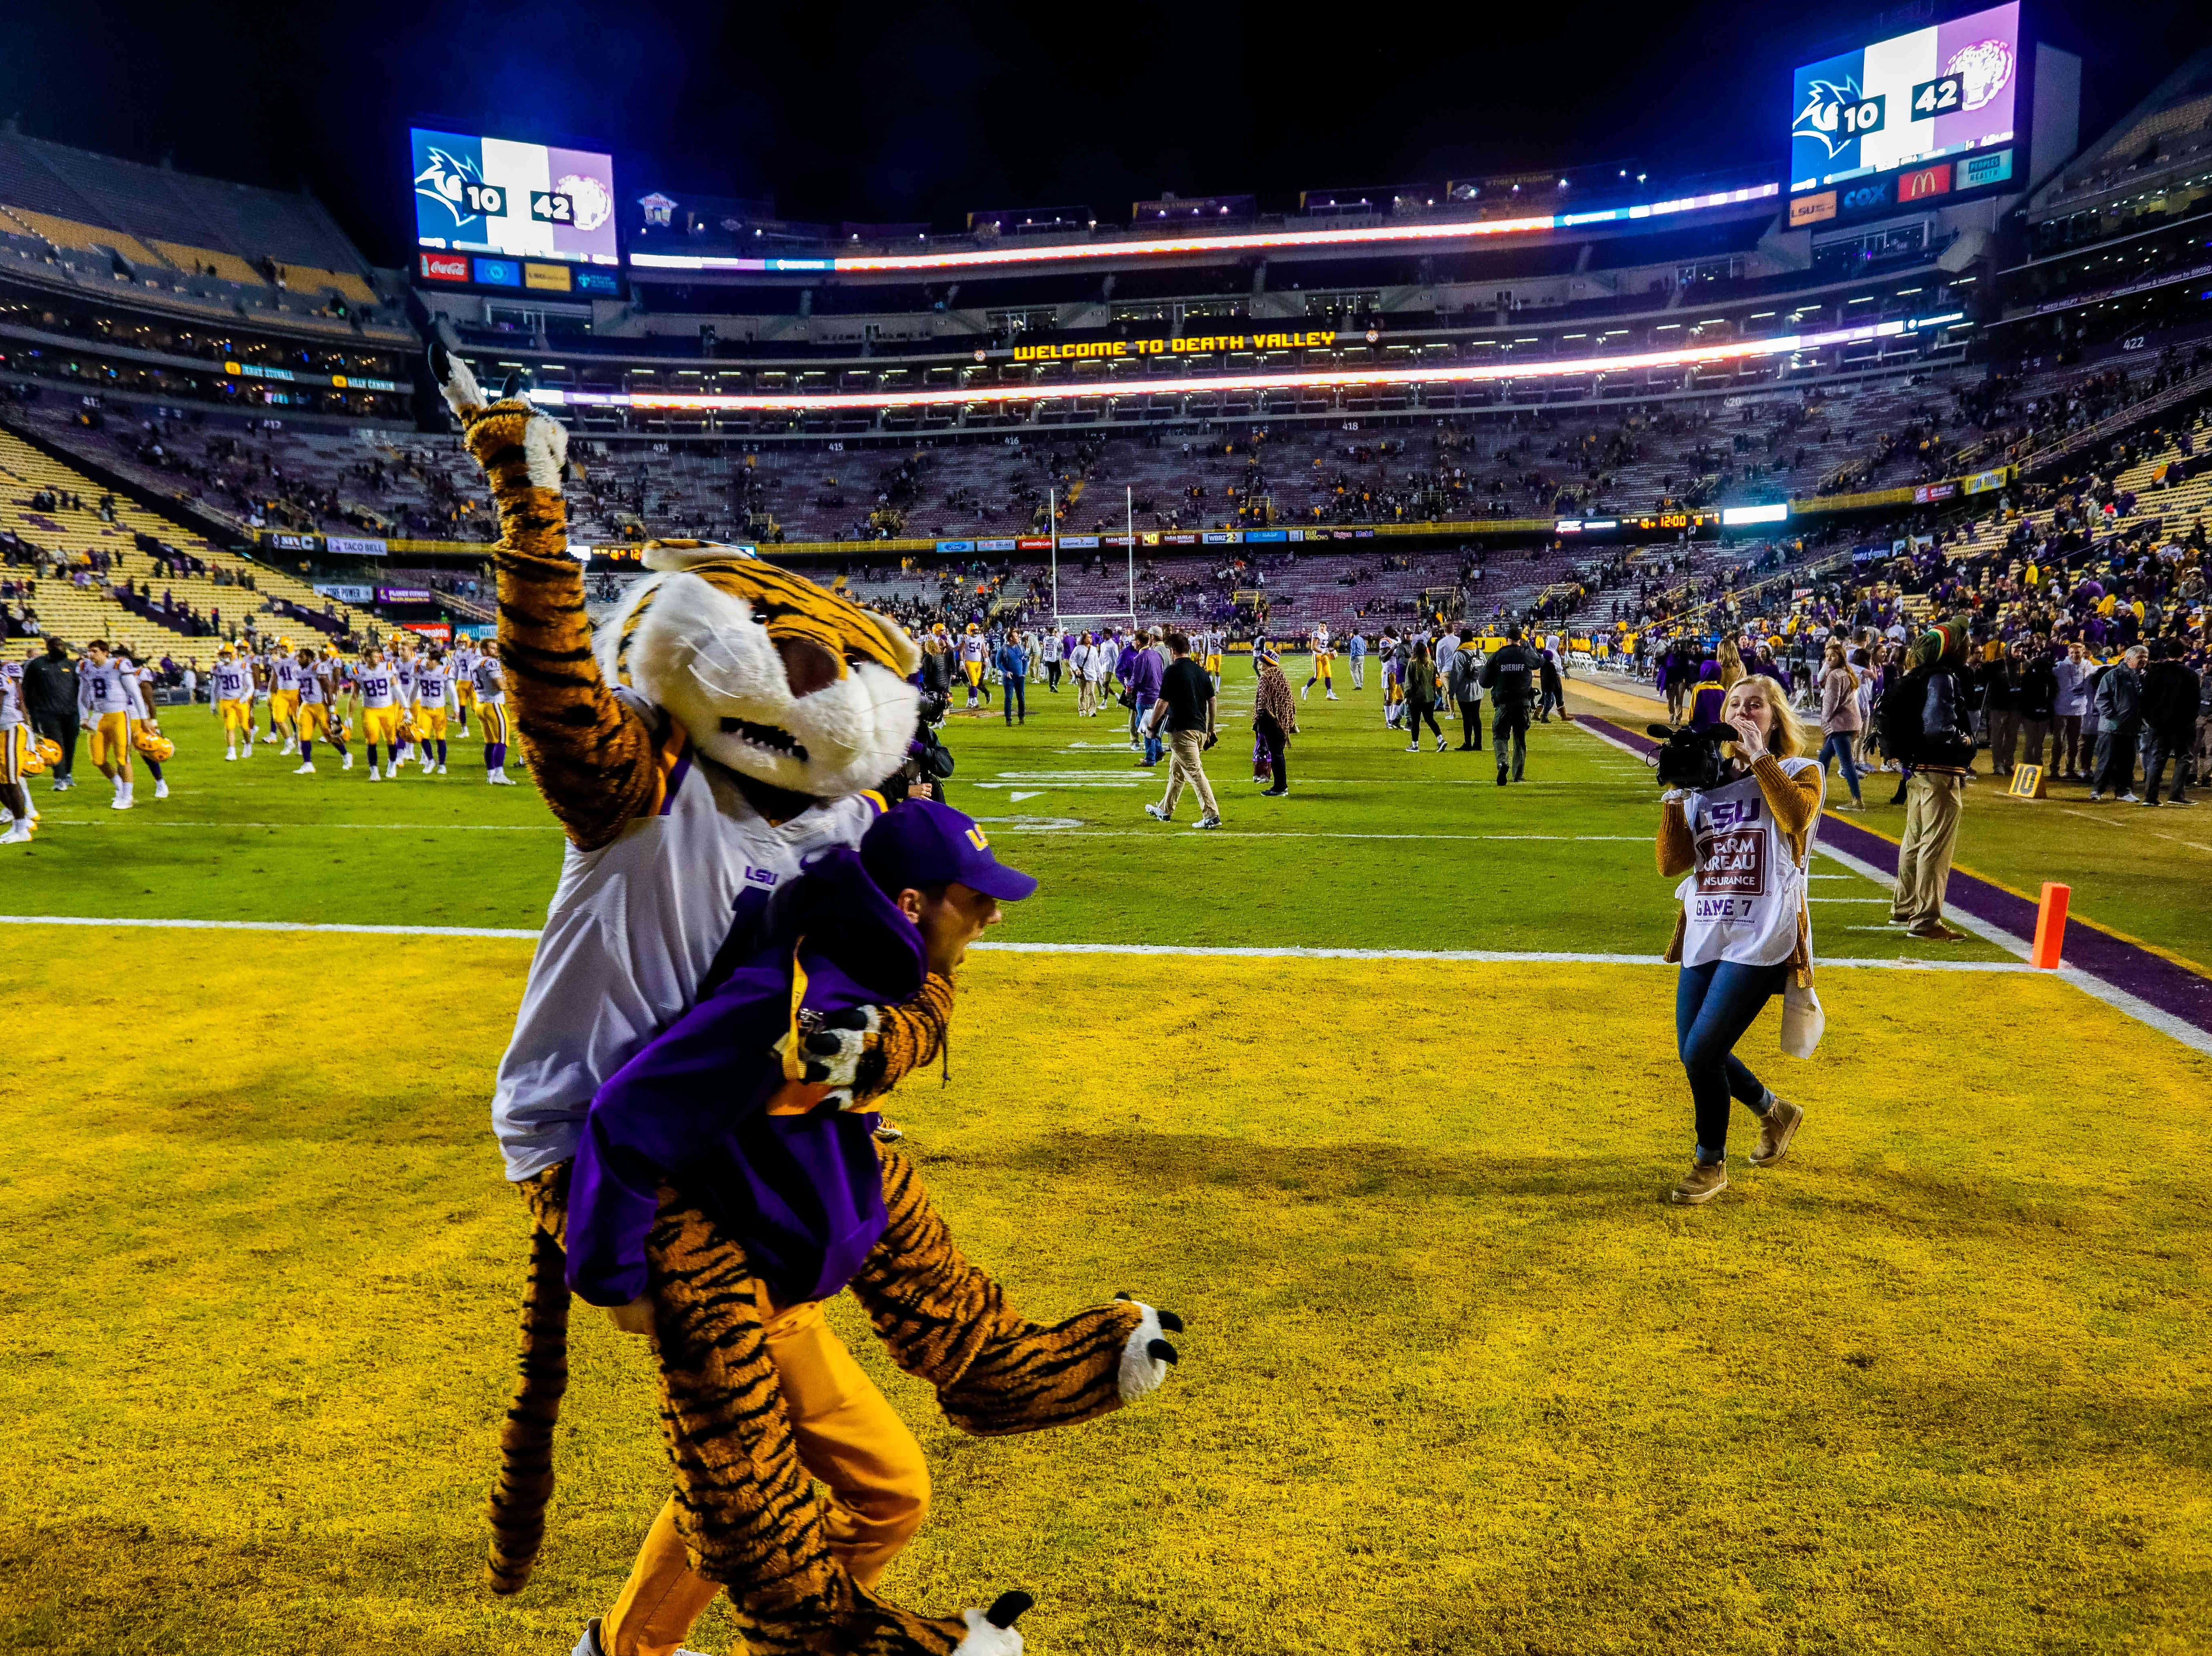 Week 12: The LSU Tigers mascot celebrates a victory over the Rice Owls at Tiger Stadium.